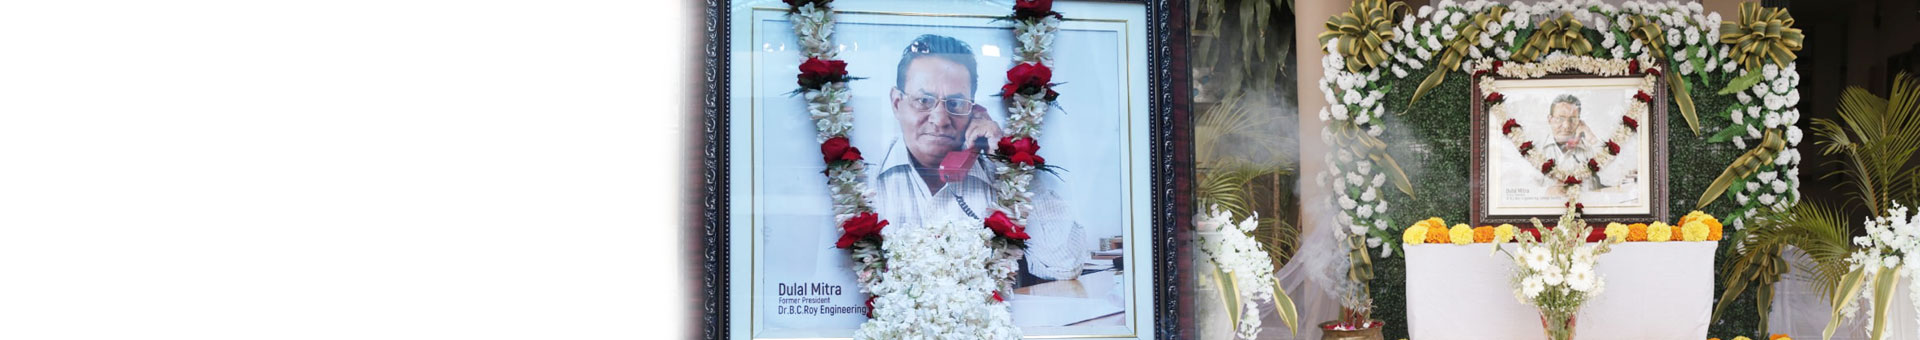 Remembering Shri. Dulal Mitra on his death anniversary